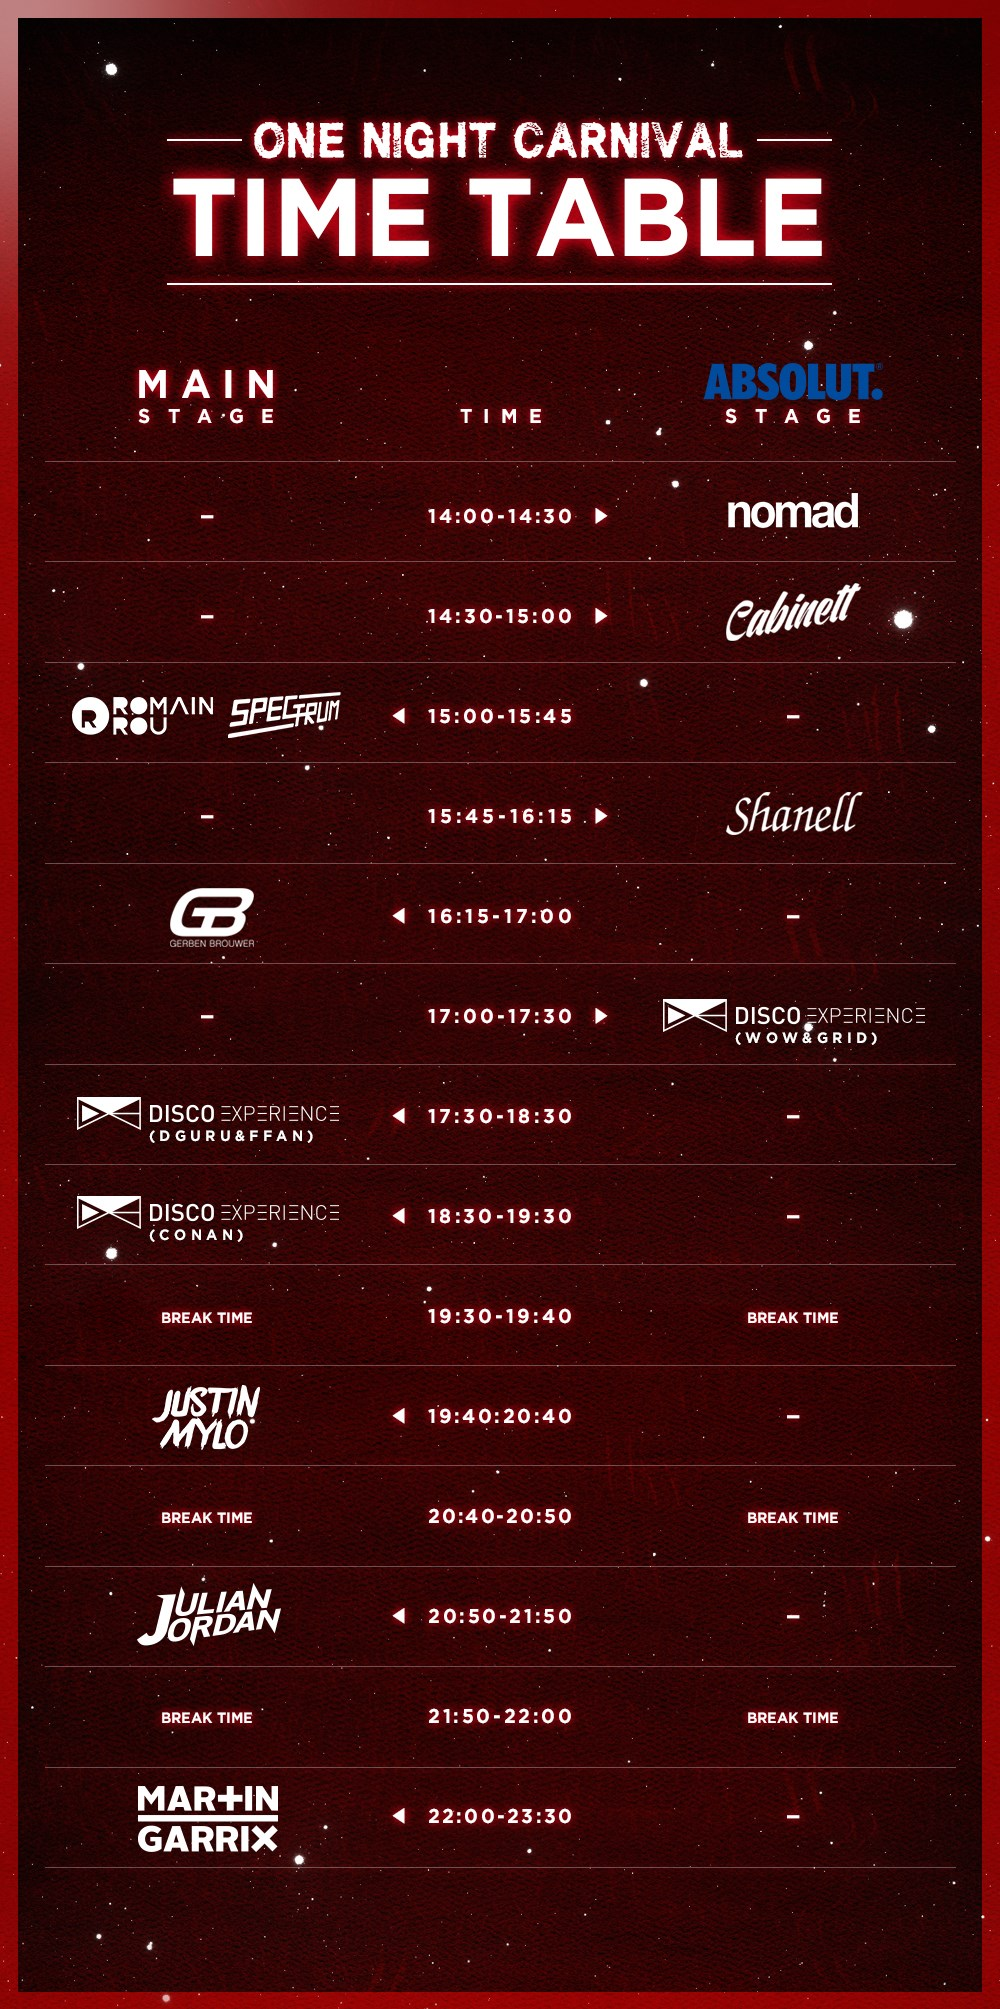 ONE NIGHT CARNIVAL TIME TABLE